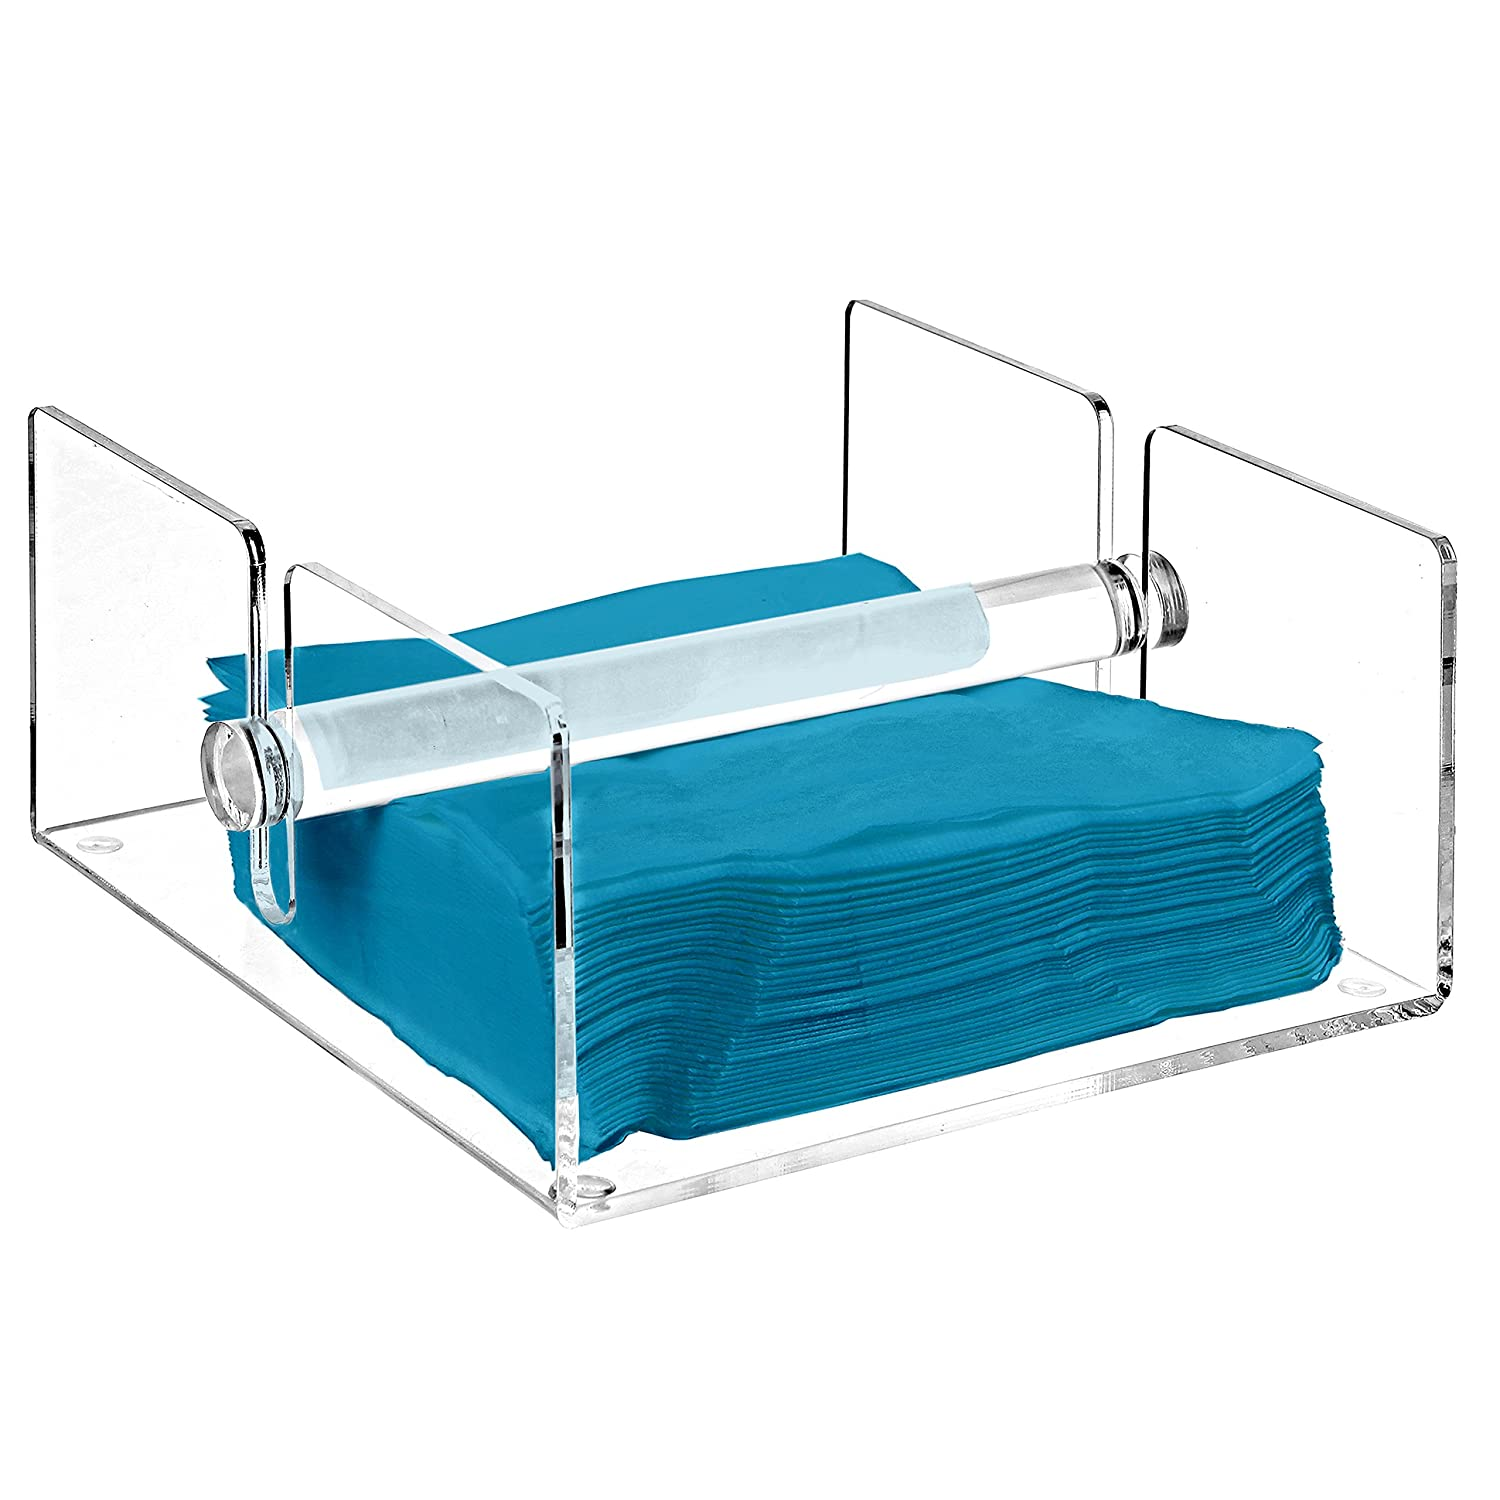 Modern Clear Acrylic Kitchen Napkin Holder Rack with Center Bar Weighted Arms - MyGift COMINHKPR91743